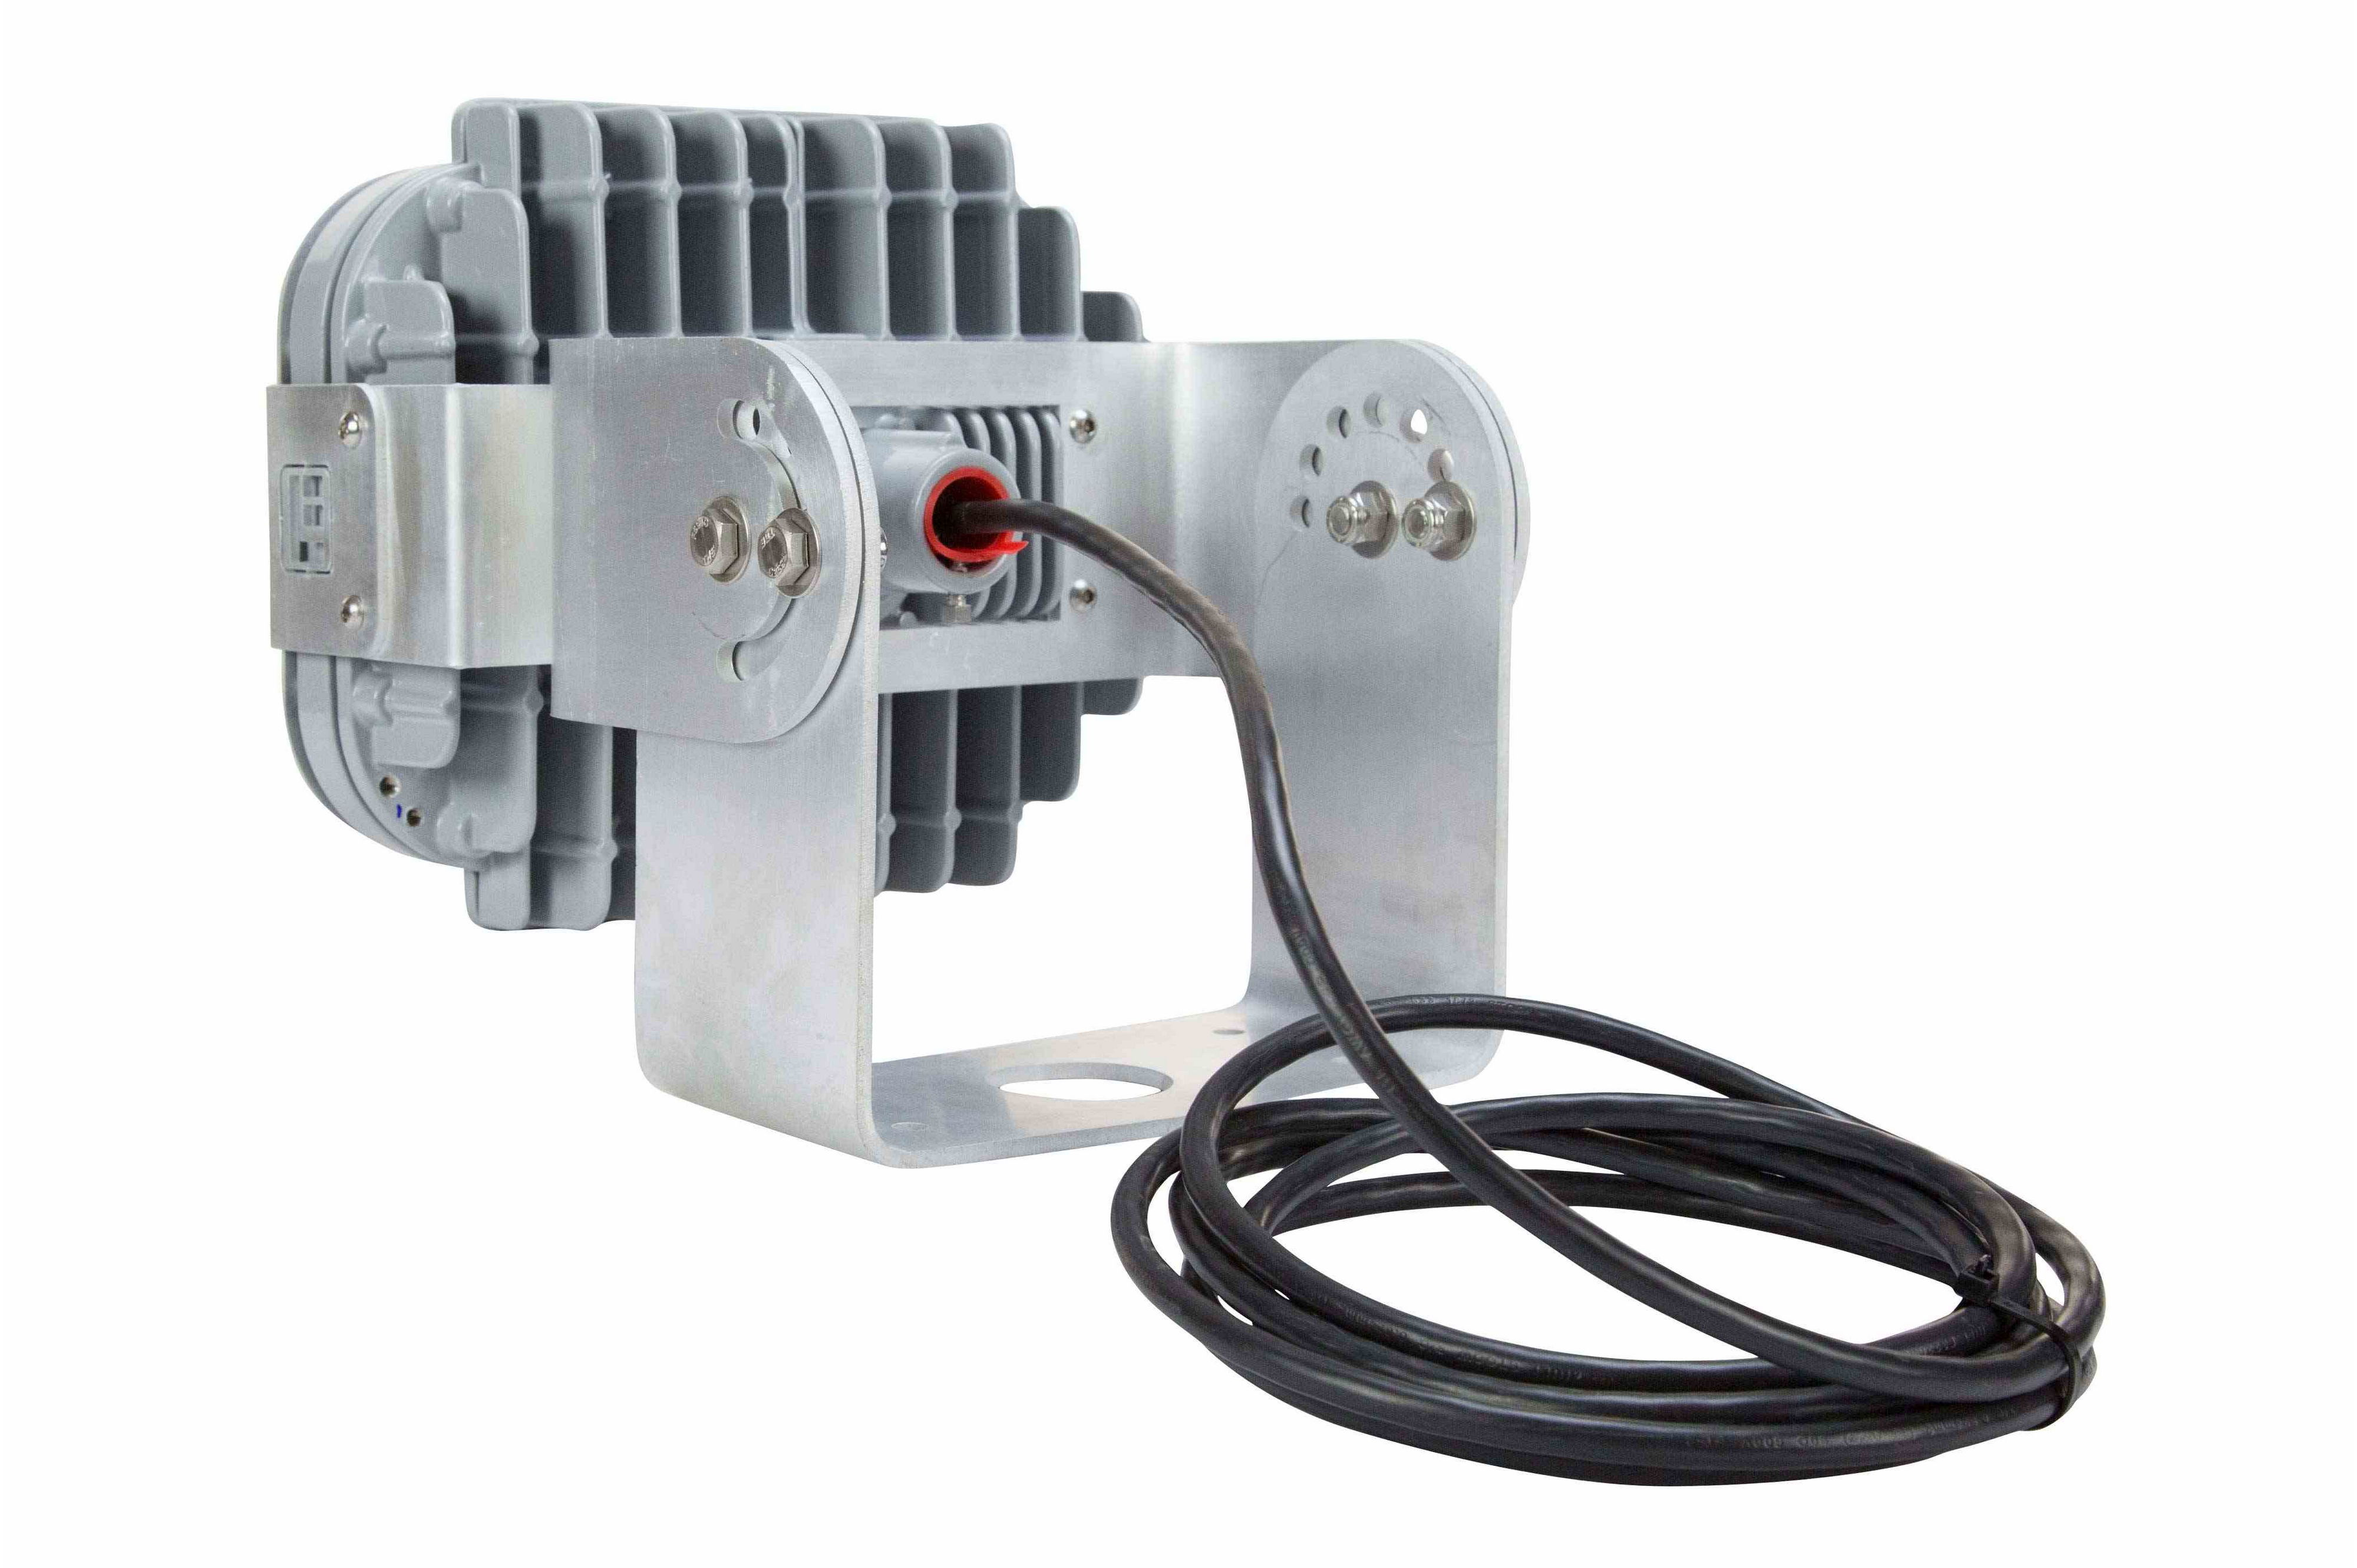 Explosion Proof 70 Watt Low Profile Wall Mount Led Light Fixture Wiring Mounted Hi Res Image 5